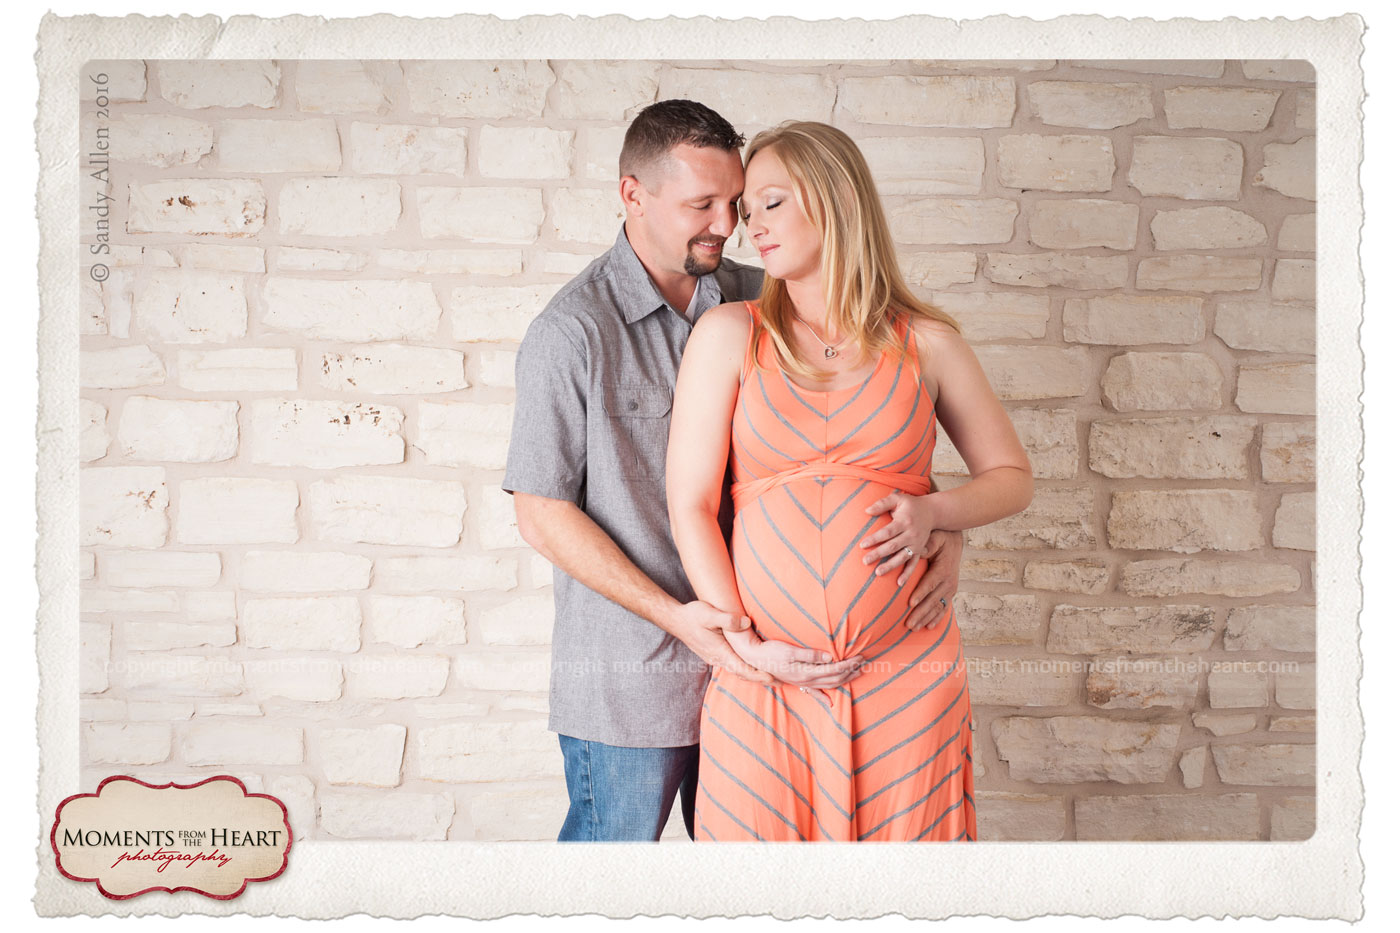 beautiful romantic maternity couple photo session